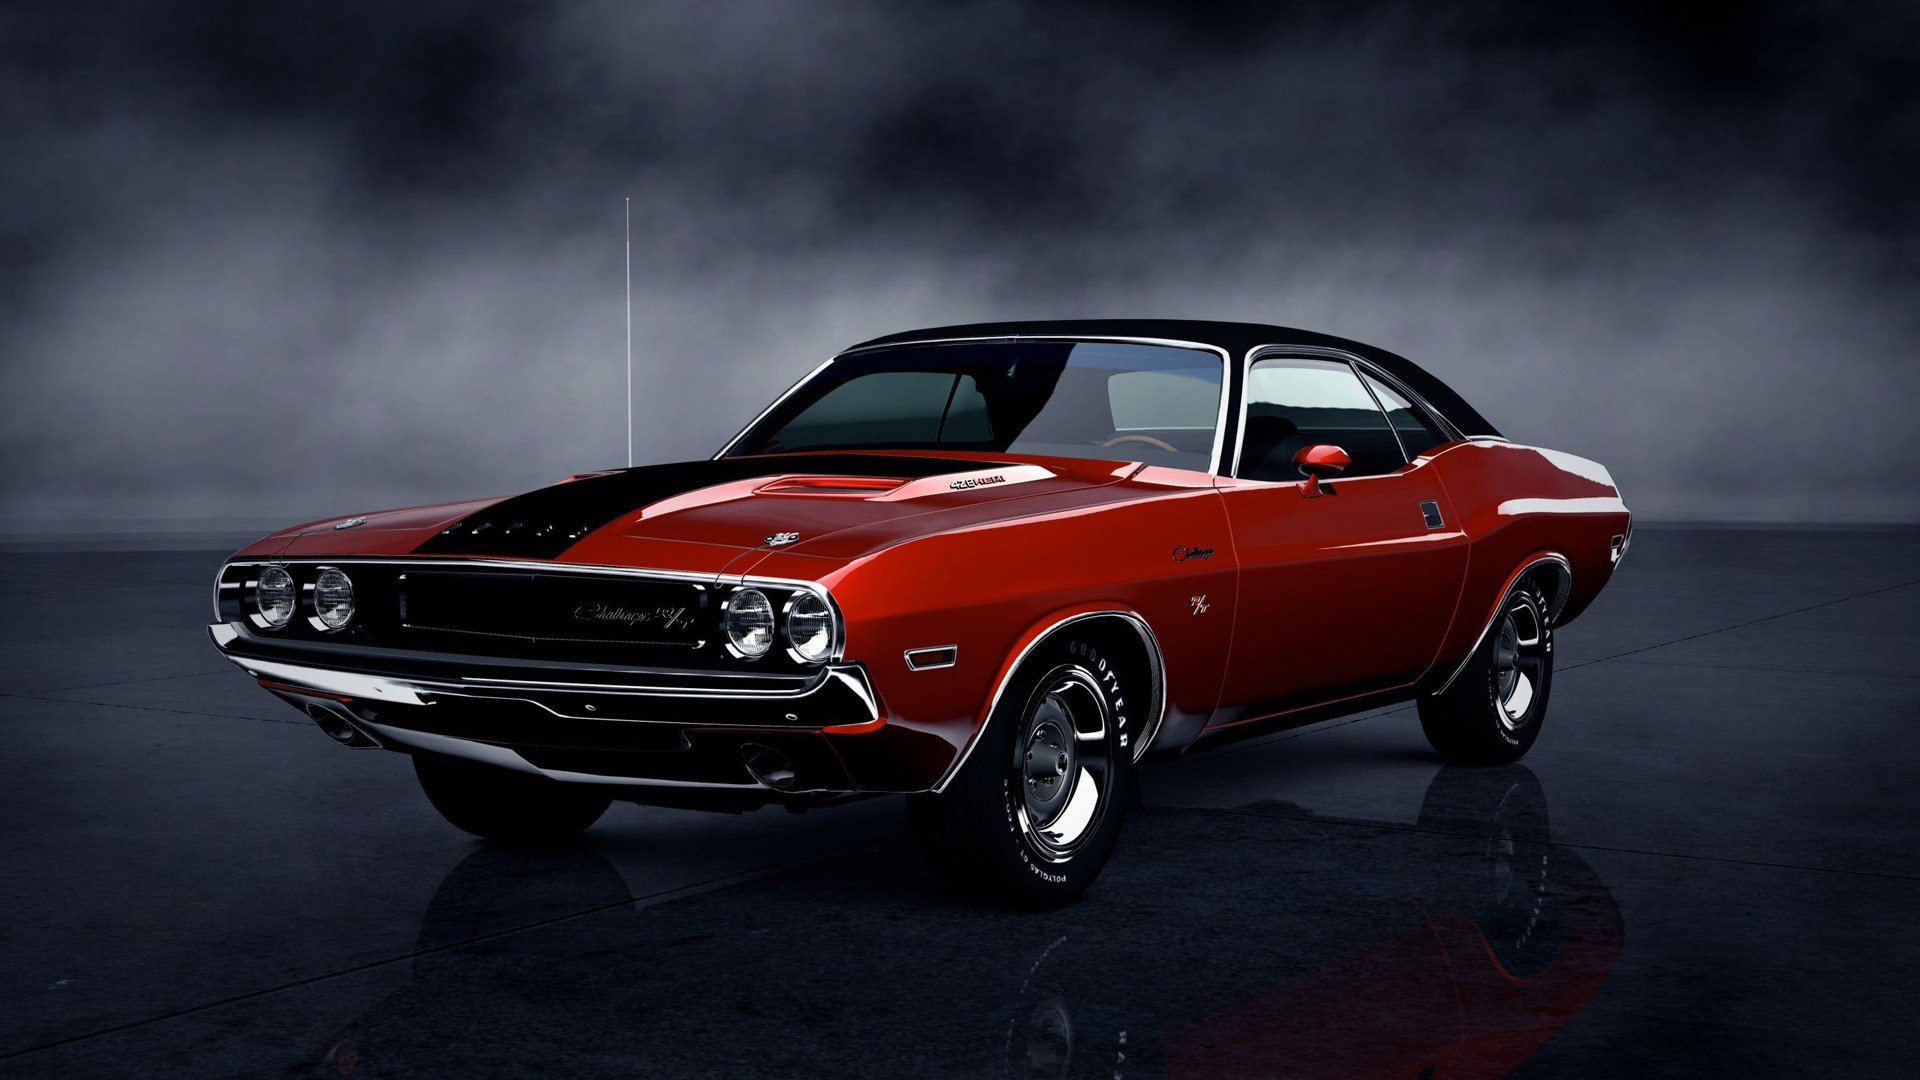 Dodge Challenger RT Wallpaper 7   1920 X 1080 stmednet 1920x1080